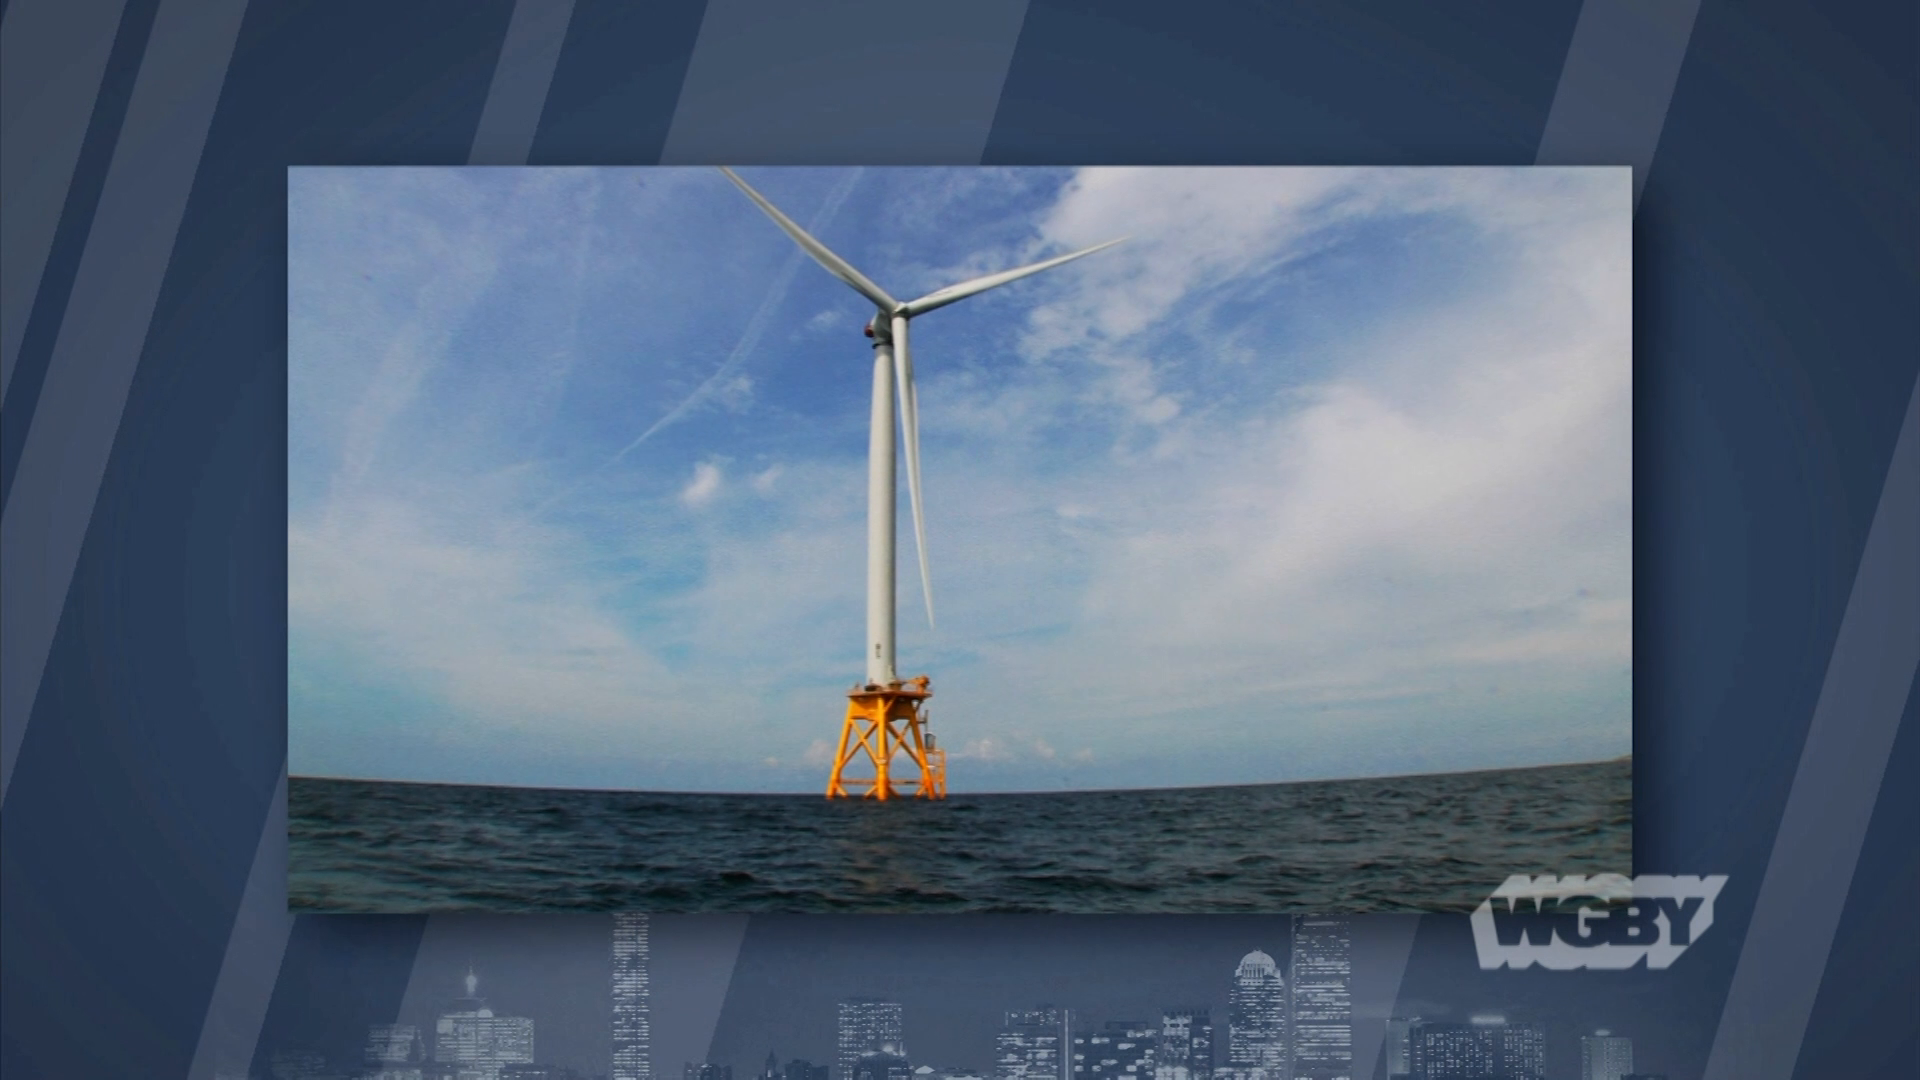 Stephanie Leydon reports on how the fishing community of New Bedford is leadig the charge in wind energy production--and creating new jobs.